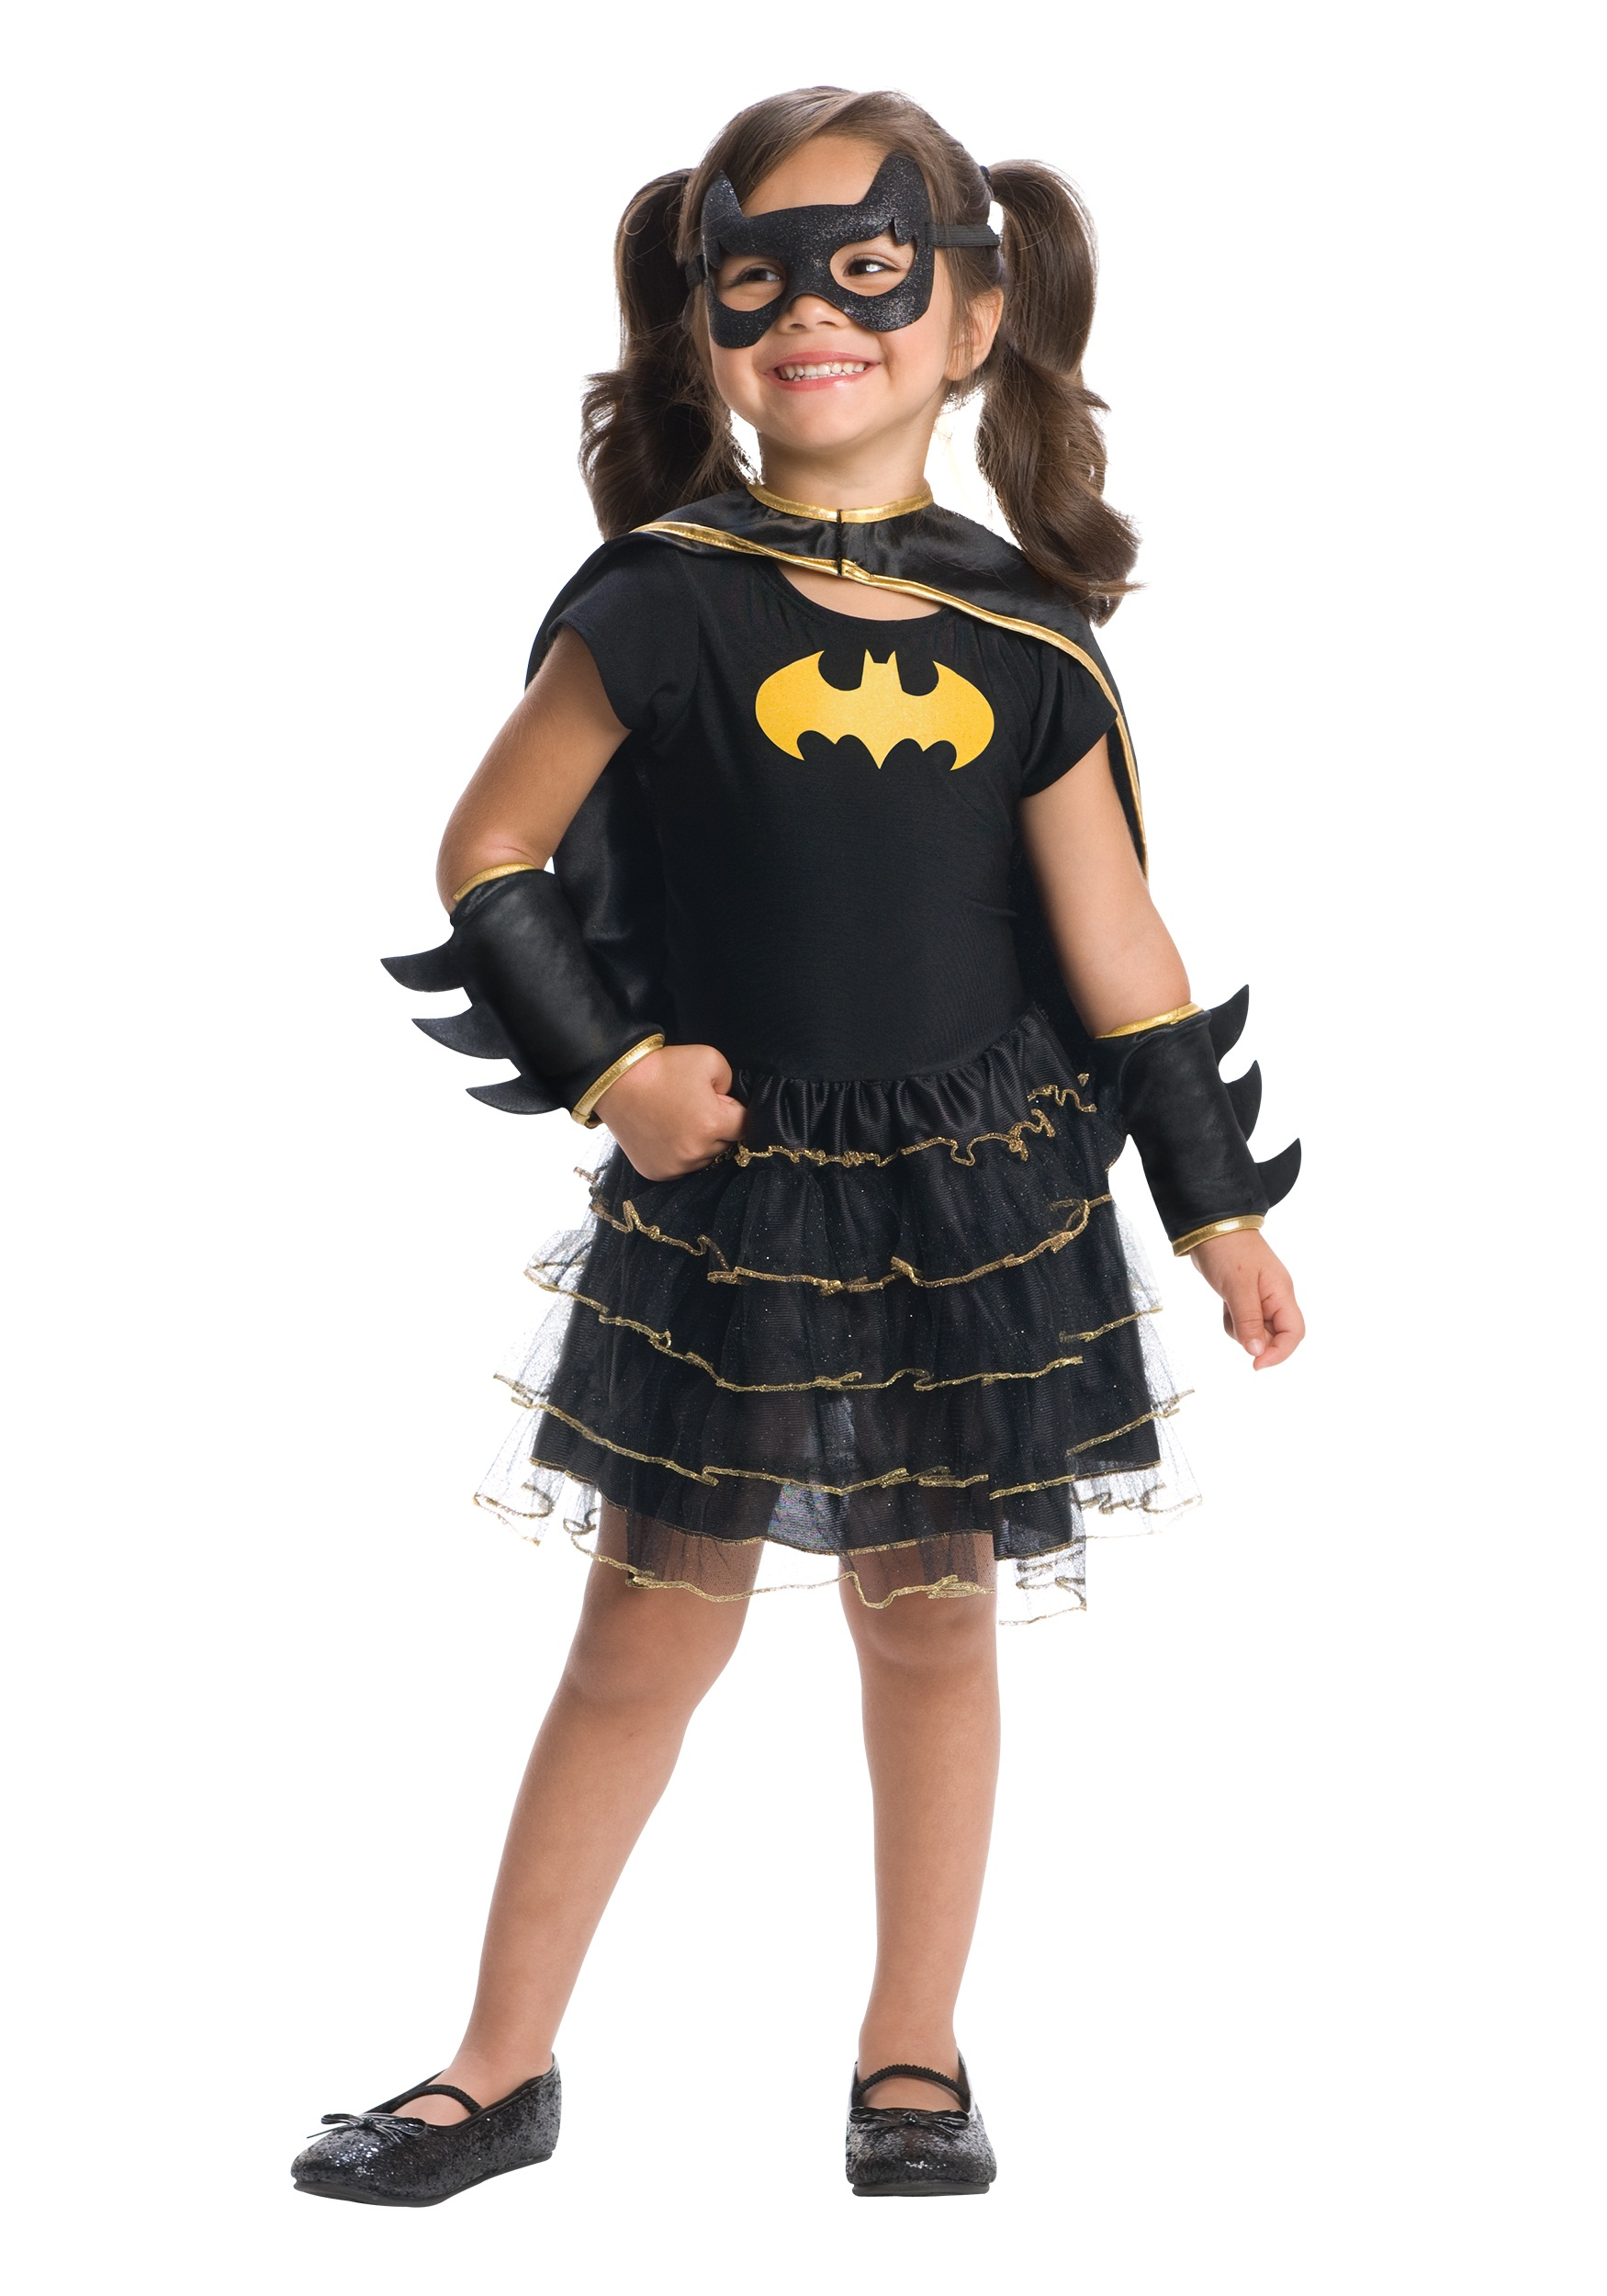 ... toddler bat tutu set · batman homemade costume tutorials are under catwoman more · catwoman costume kids catwoman ...  sc 1 st  Best Kids Costumes & Catwoman Costume For Kids - Best Kids Costumes